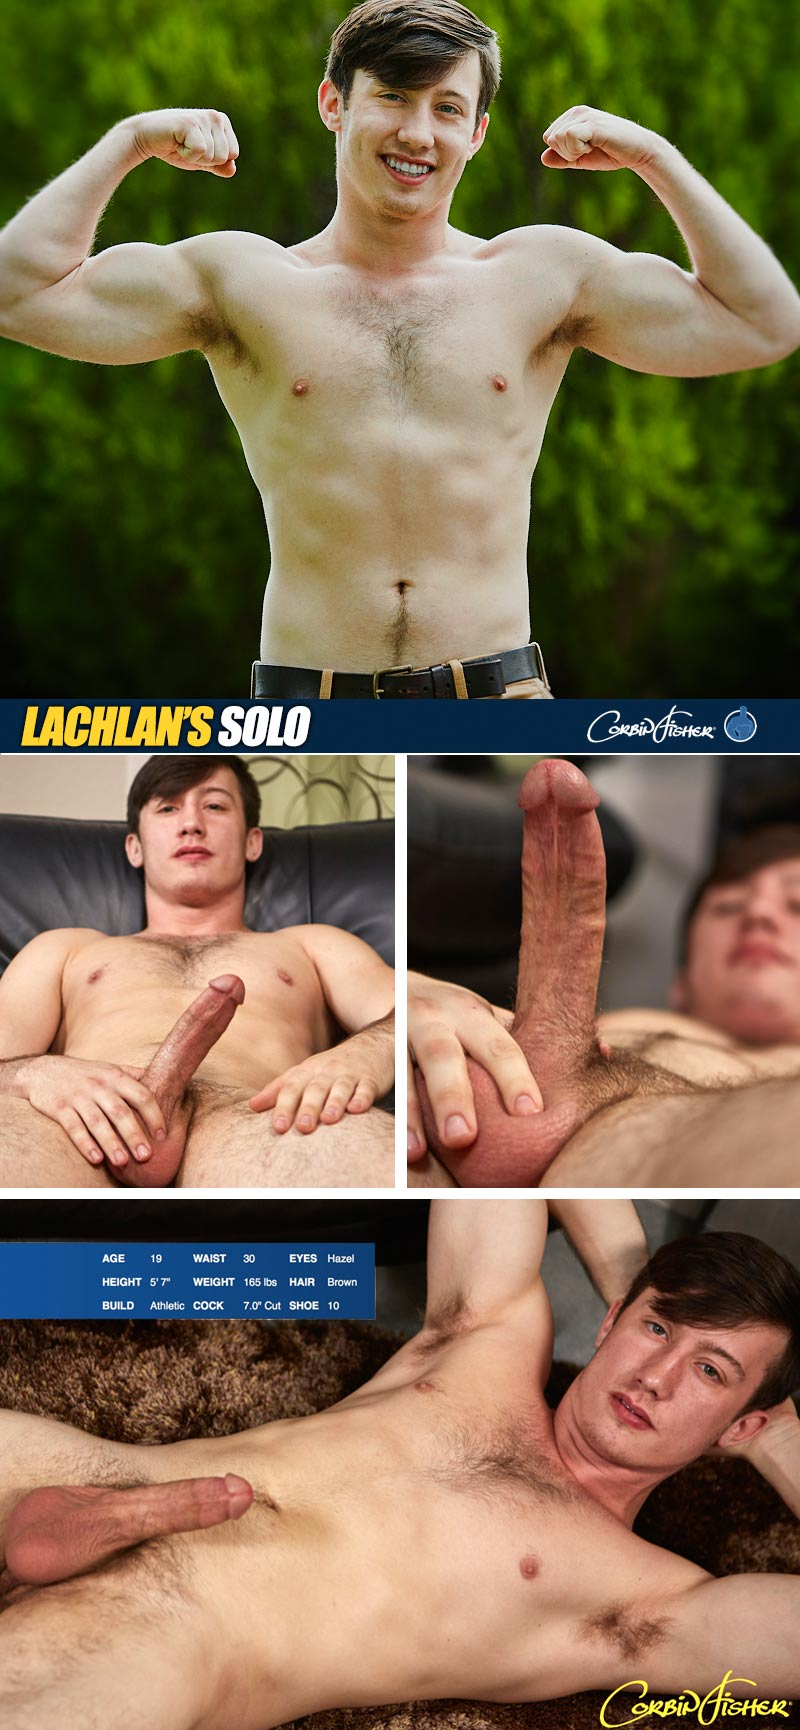 Lachlan (Introductory Solo) at CorbinFisher